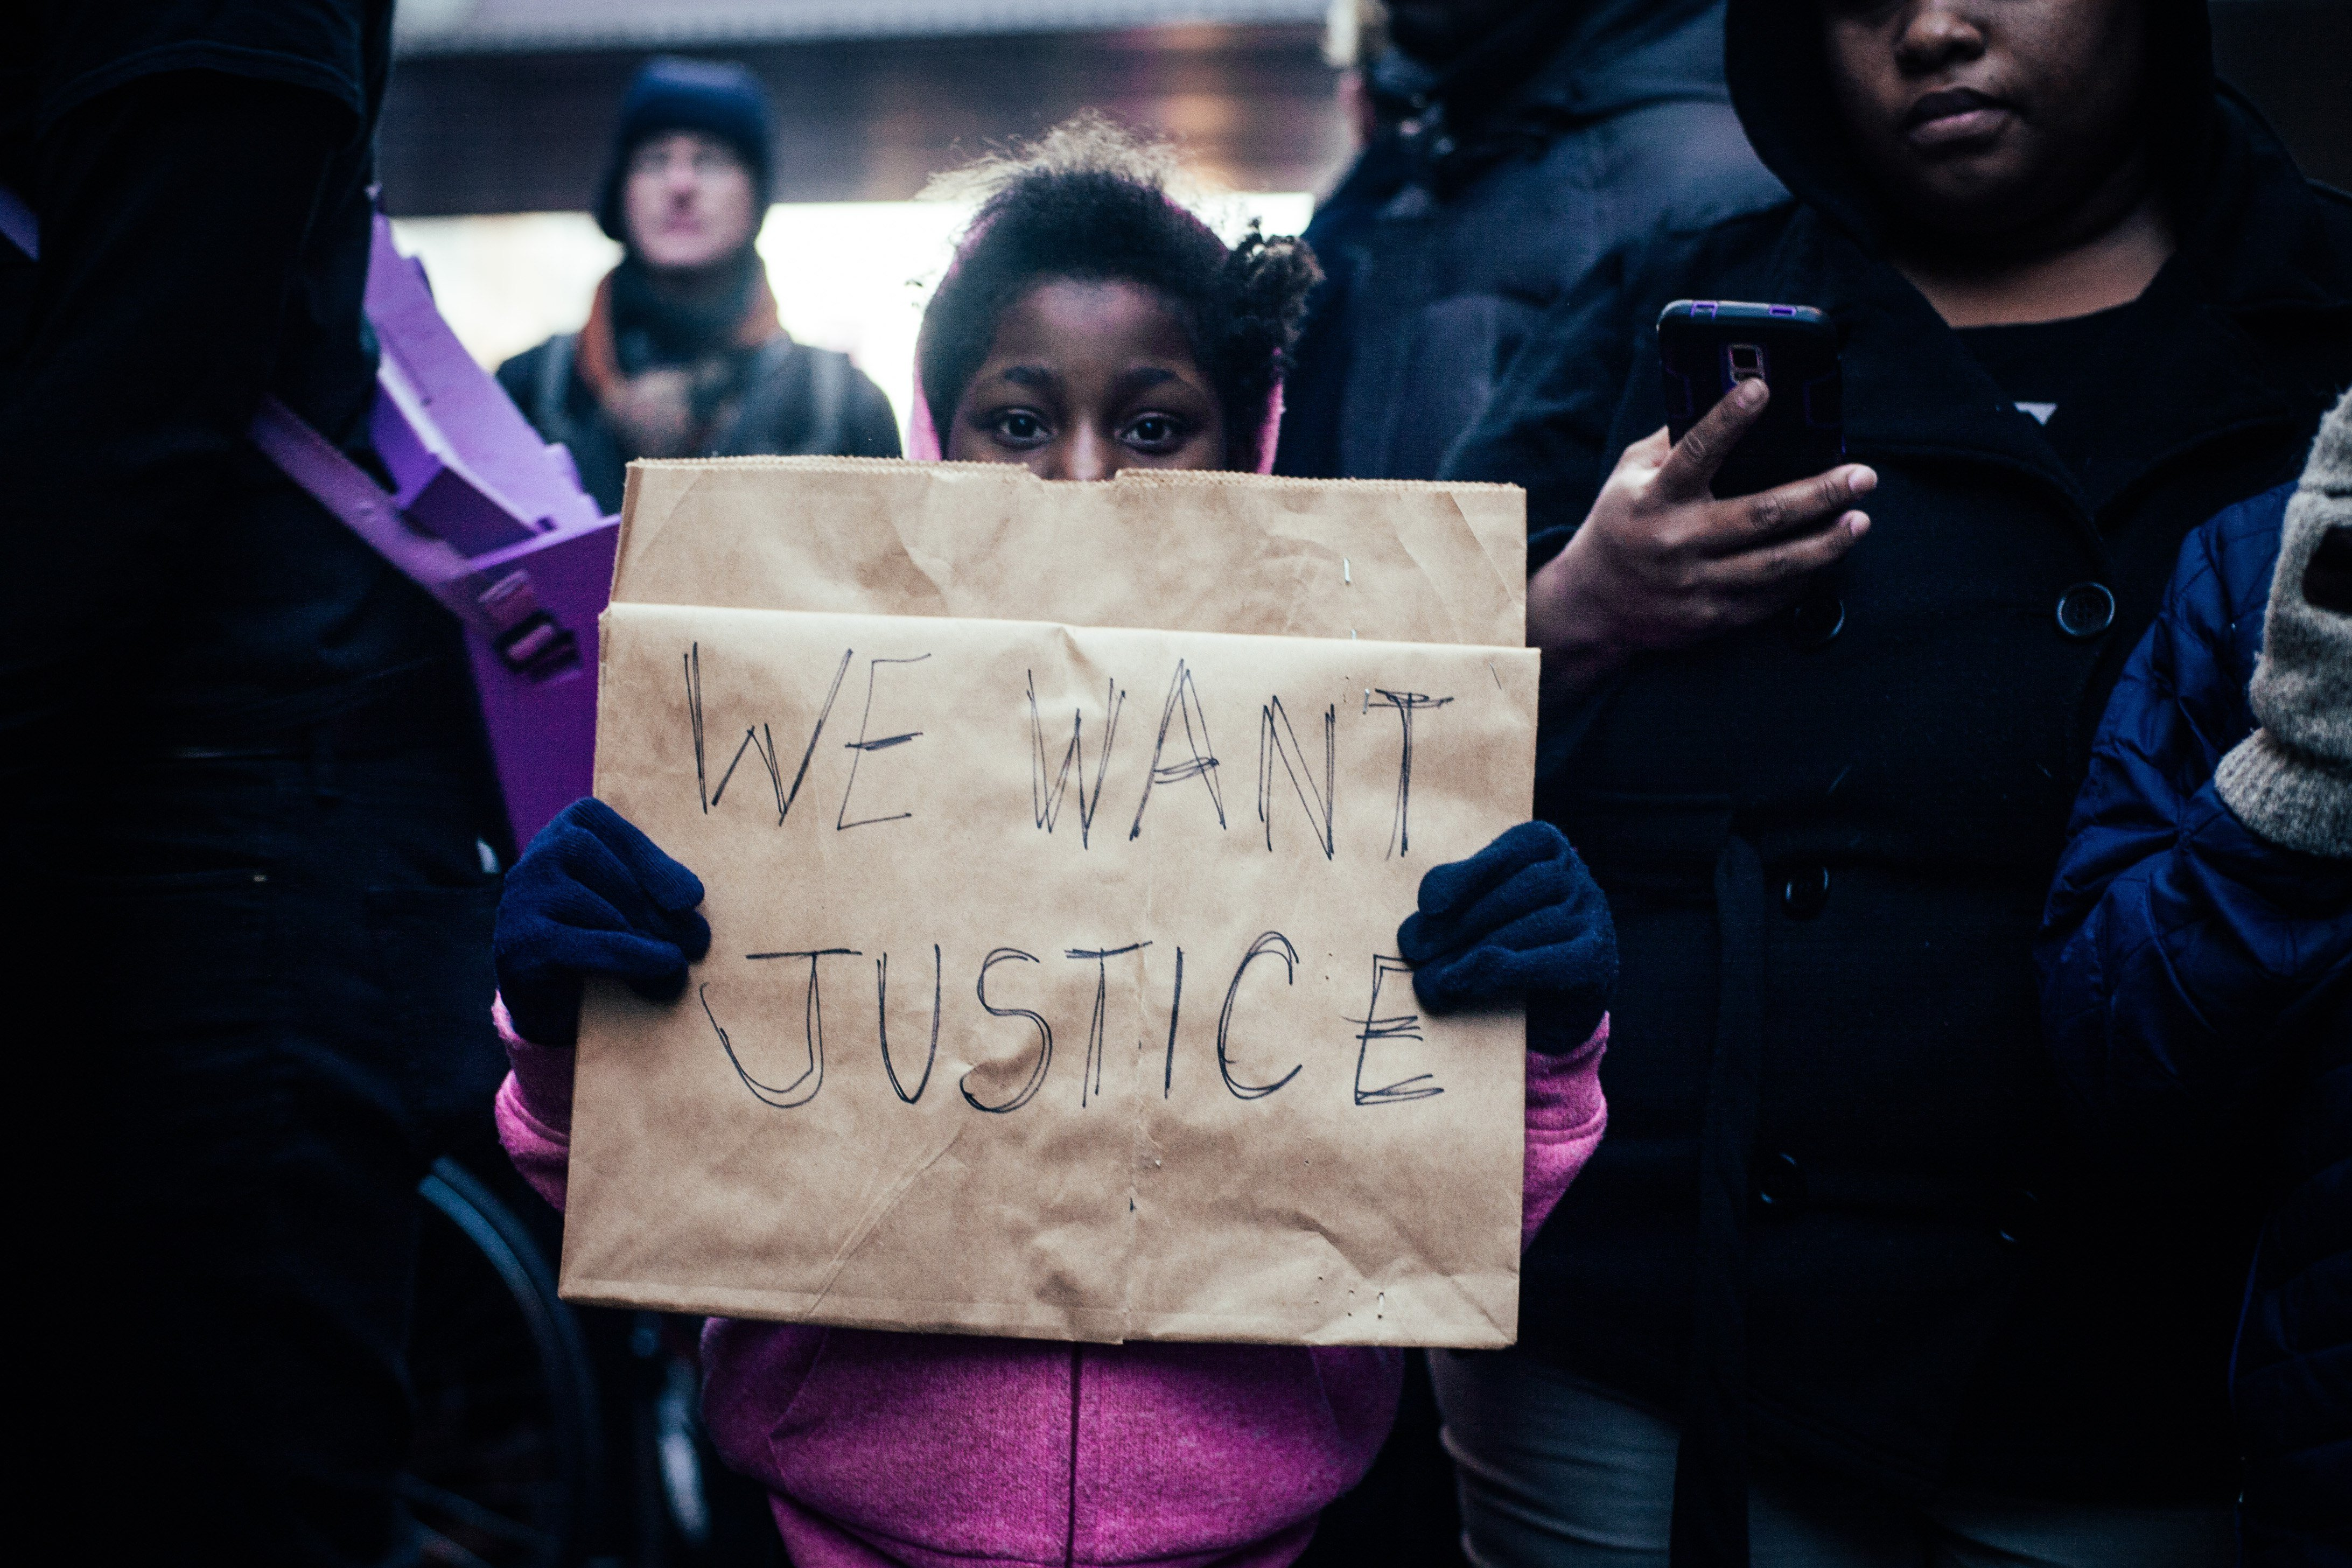 A young girl marches with protesters in downtown Minneapolis on Nov. 24